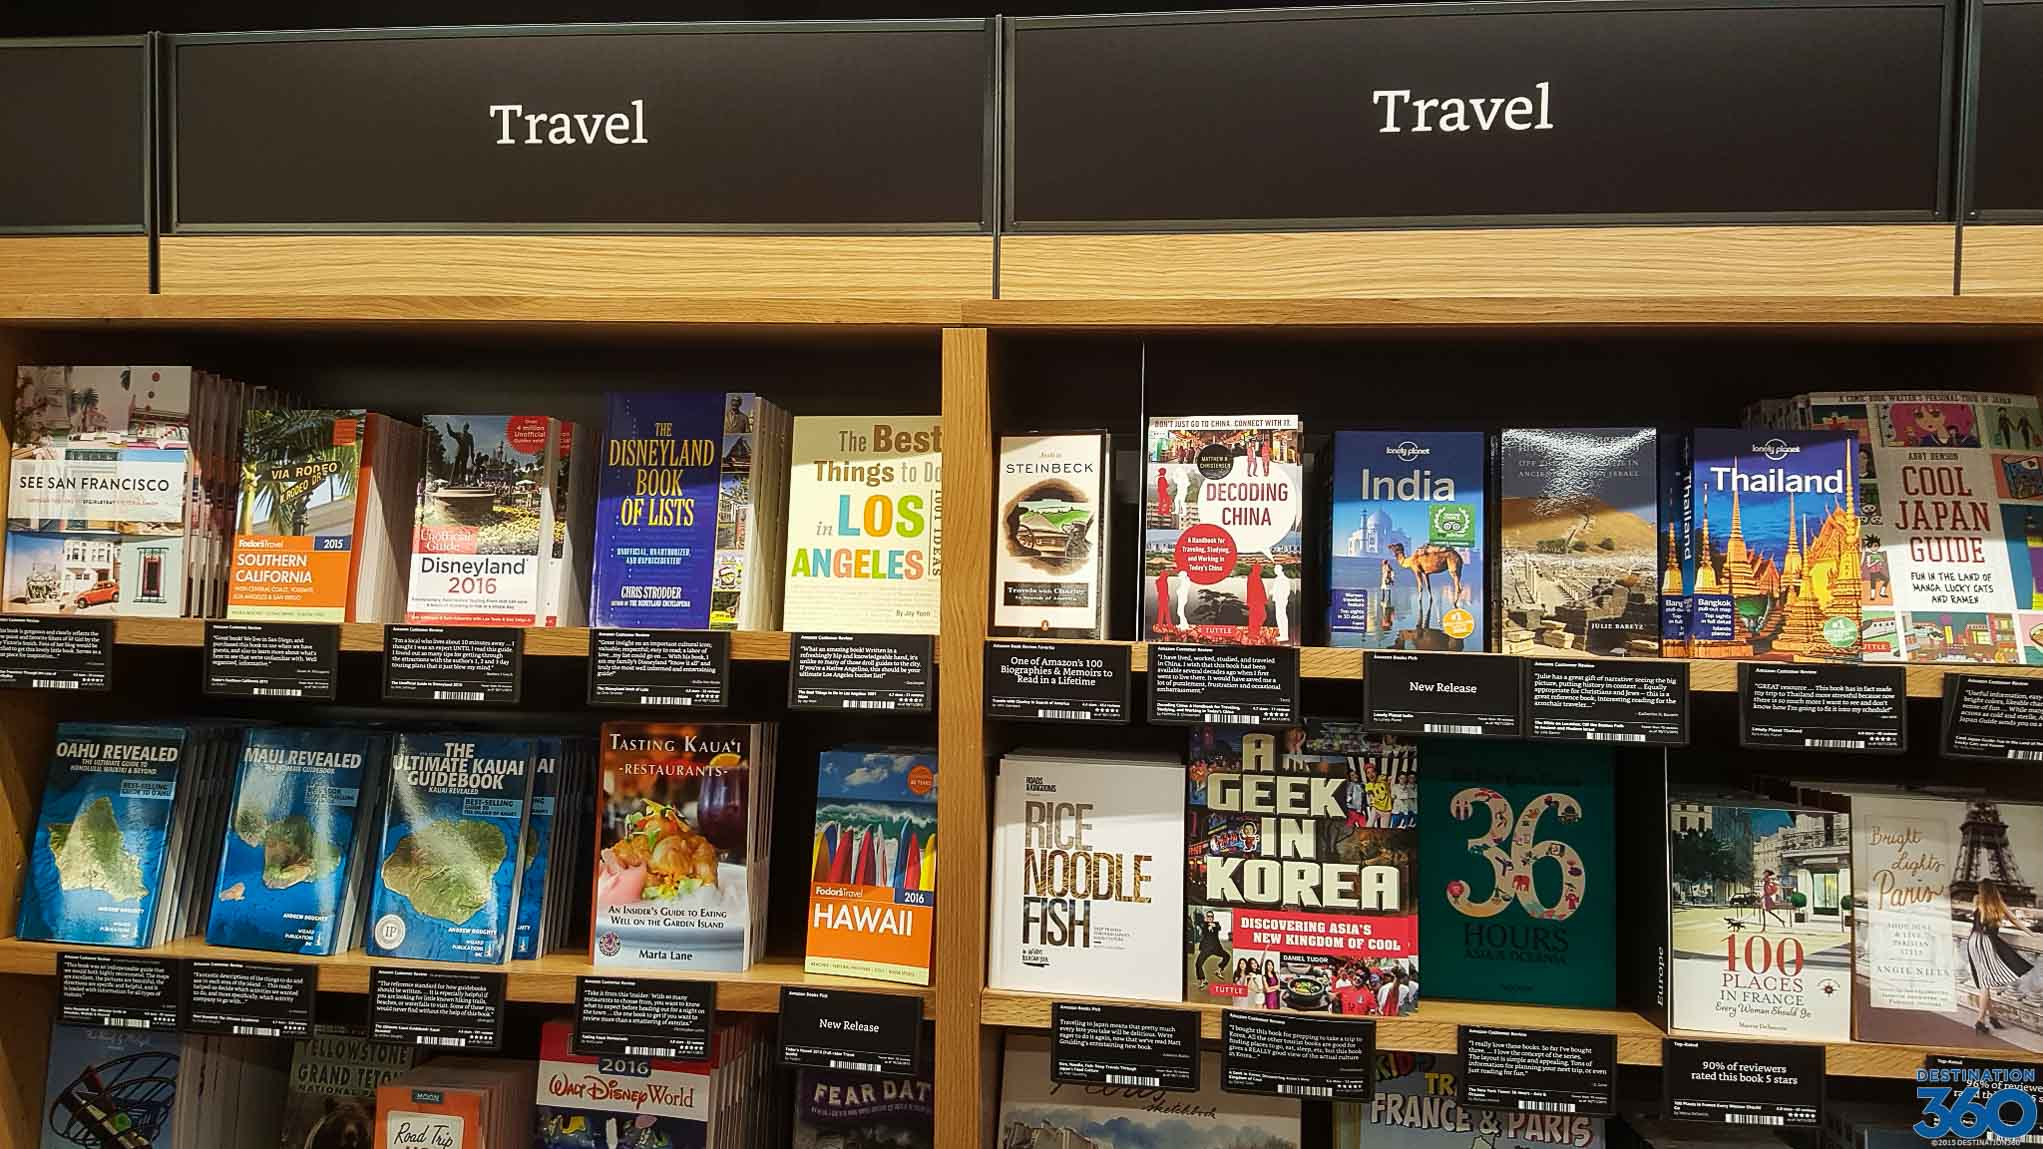 "Amazon Travel Books - My favorite! There's a nice mix of guides and inspiration. See them online at <a target=""_blank"" rel=""nofollow"" href=""http://www.amazon.com/gp/search?ie=UTF8&camp=1789&creative=9325&index=books&keywords=Travel%20Books&linkCode=ur2&tag=d360-20&linkId=OV6BZZRCMN4OUEPY"">Travel Books</a><img src=""http://ir-na.amazon-adsystem.com/e/ir?t=d360-20&l=ur2&o=1"" width=""1"" height=""1"" border=""0"" alt="""" style=""border:none !important; margin:0px !important;"" />"